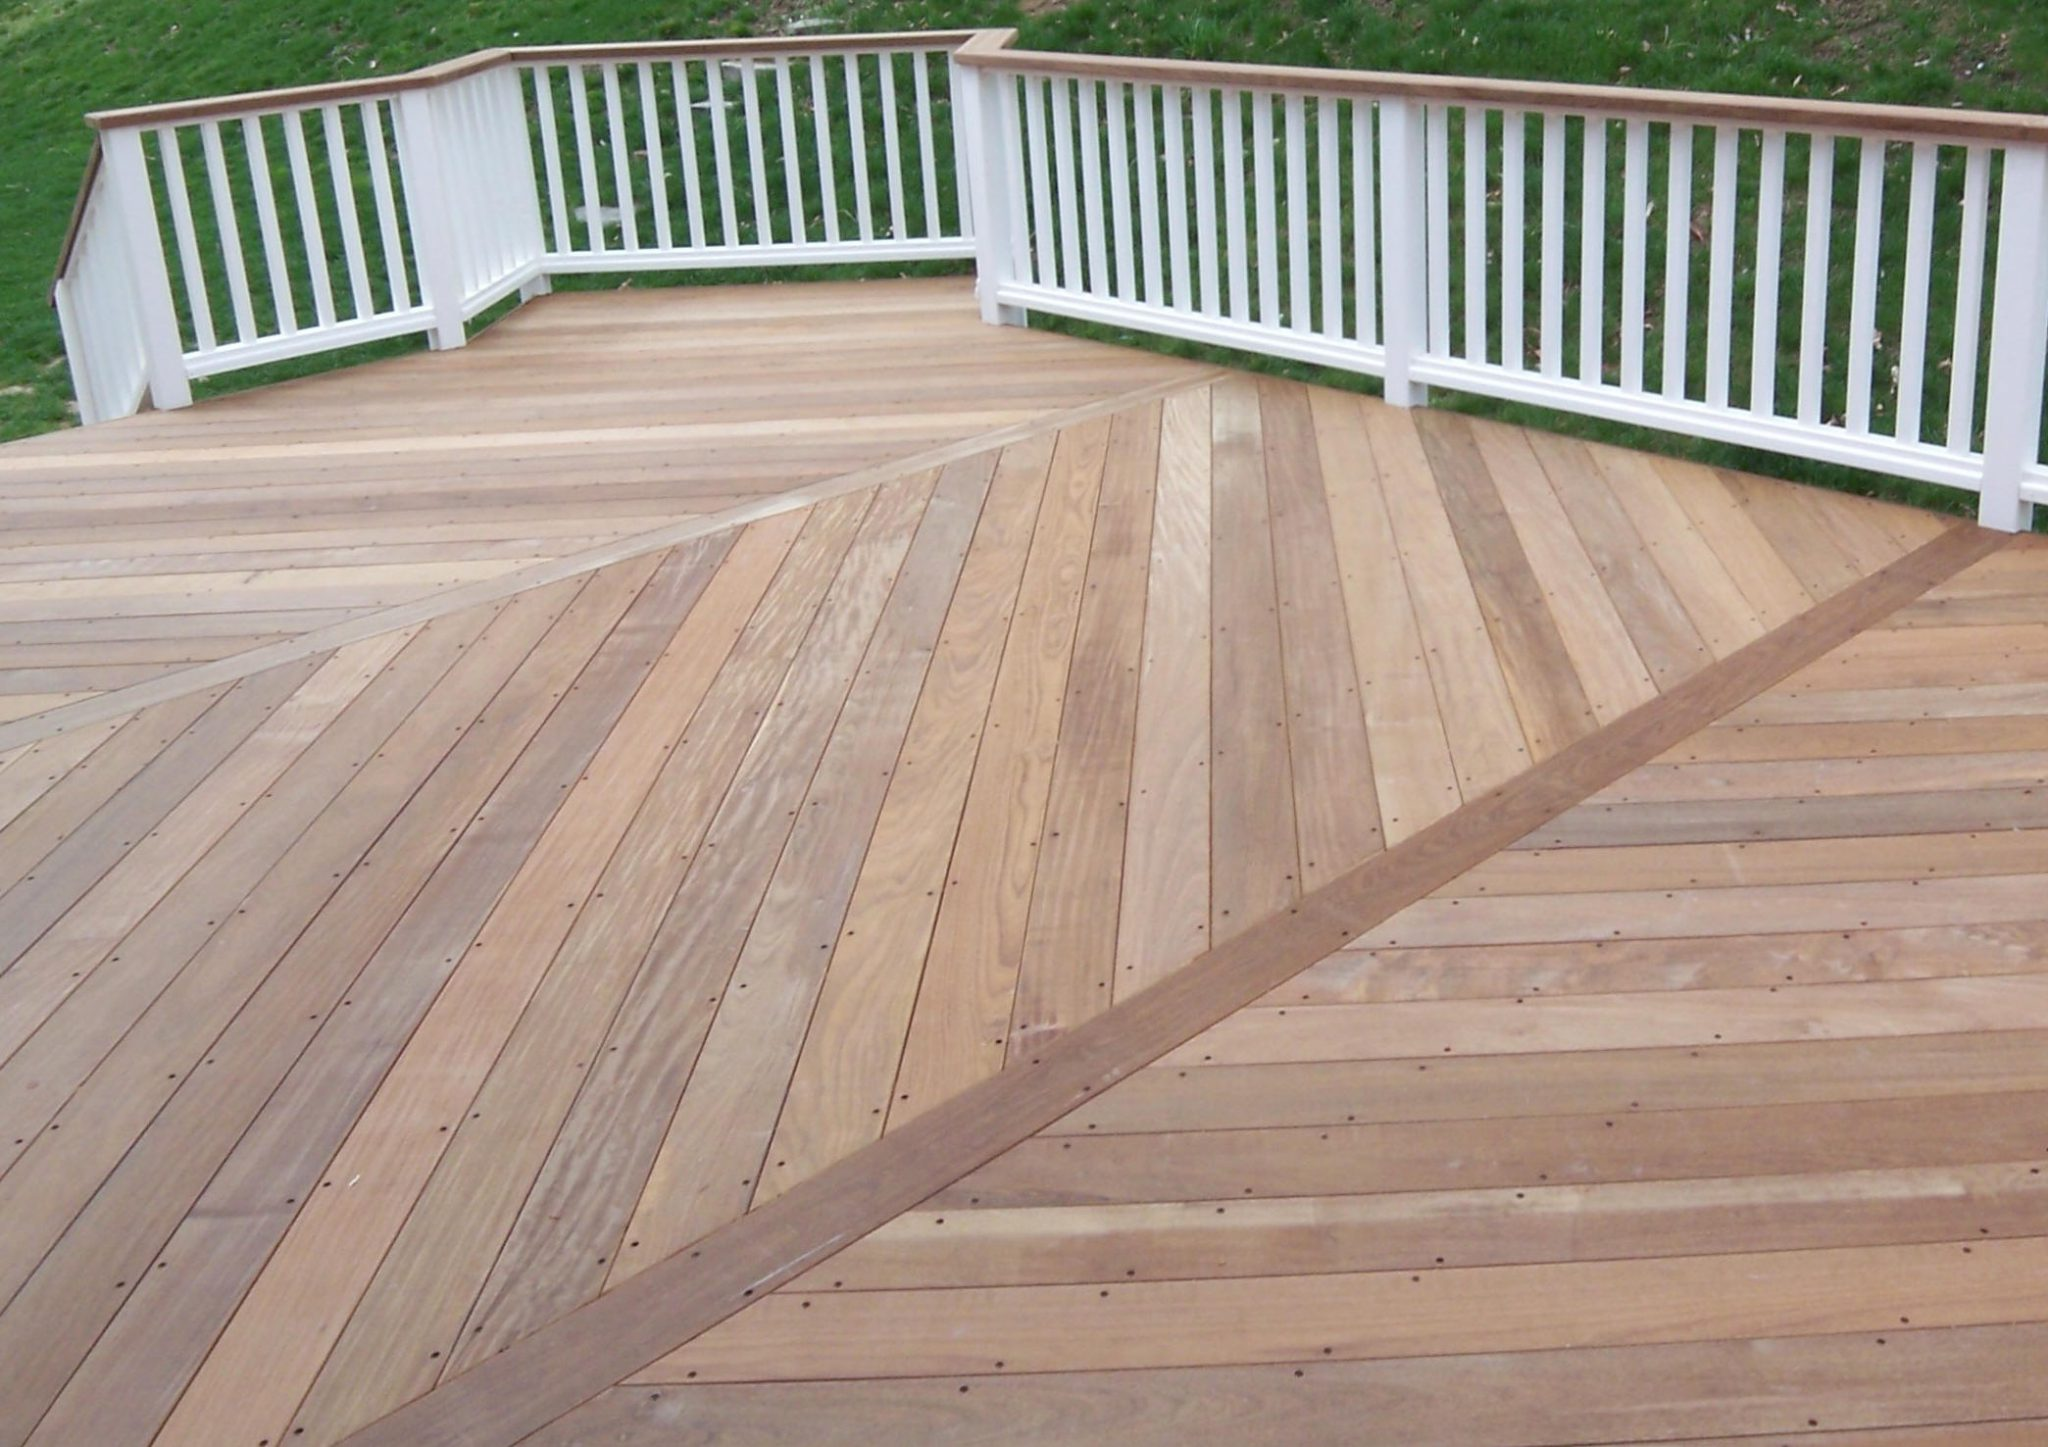 Before And After Wooden Decks Vs Composite Deck Amazing Deck